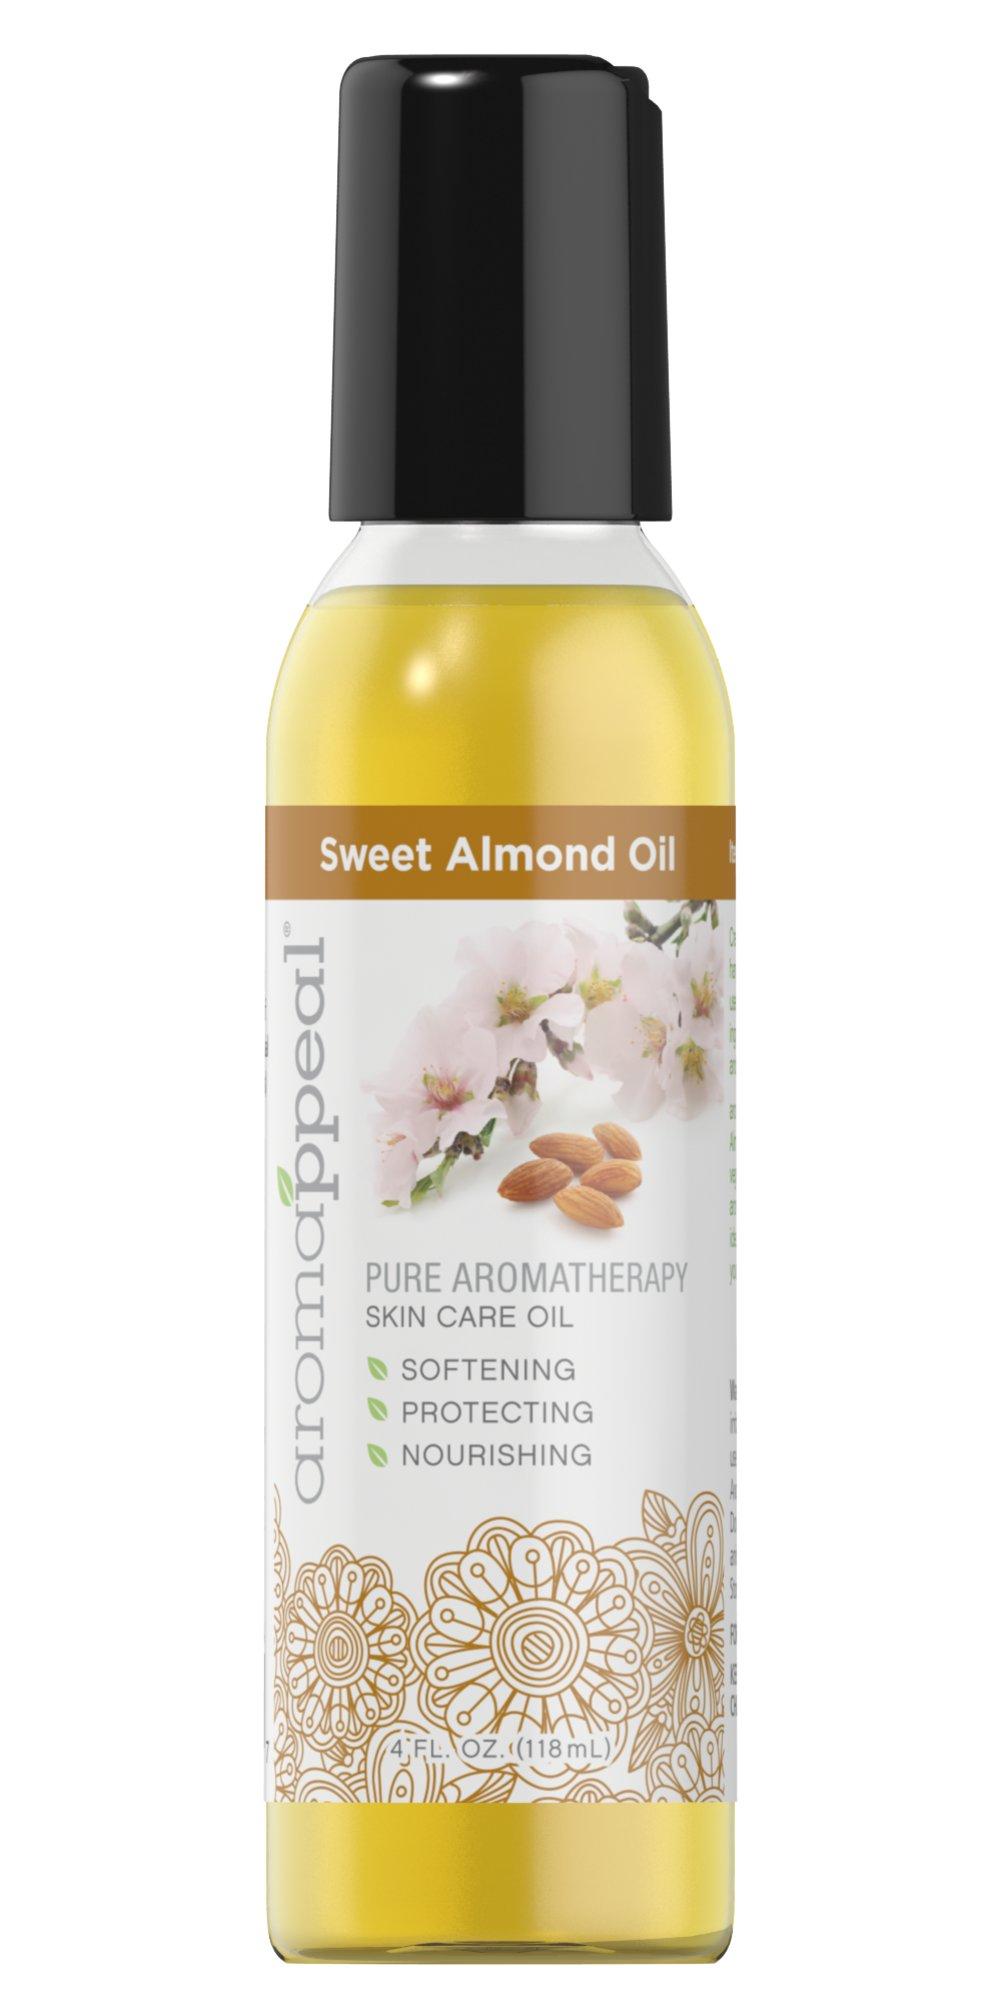 Sweet Almond Oil <p>Created to bring you harmony, Aromappeal™ uses the most balanced ingredients to lift your spirits and soothe your mind.</p><p>Aromappeal™ Sweet Almond Oil is a natural vegetable oil with a neutral aroma. This base makes an ideal ingredient to create your own aroma recipe.</p> 4 oz Oil  $8.49